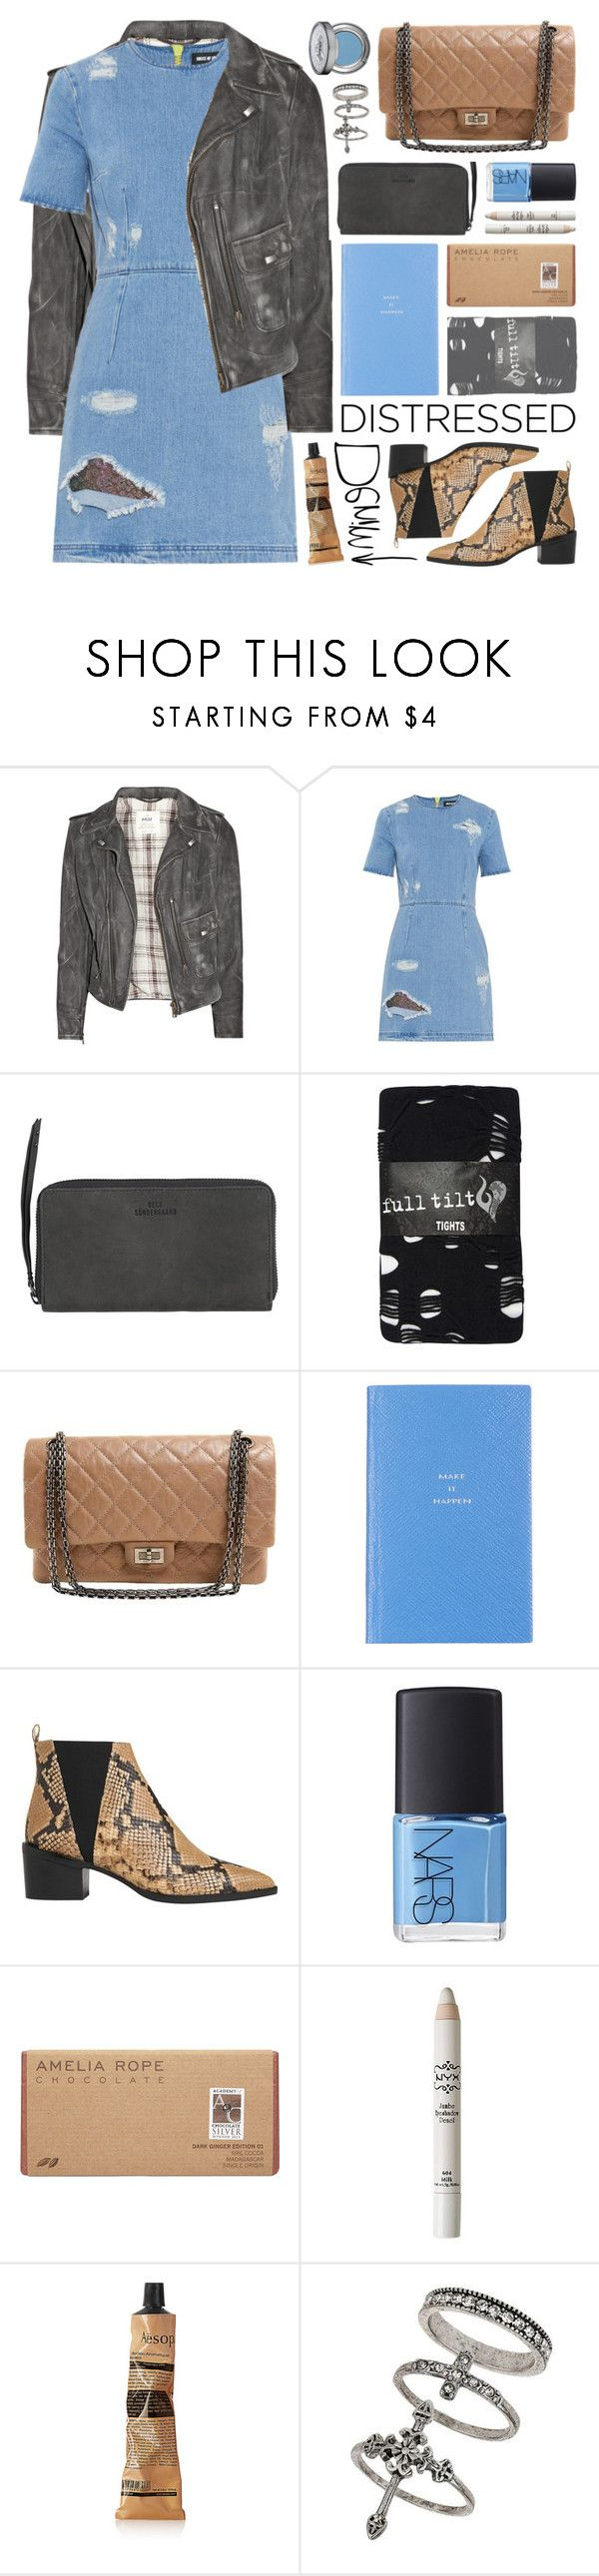 """true blue: distressed denim"" by jesuisunlapin ❤ liked on Polyvore featuring M.i.h Jeans, House of Holland, BeckSöndergaard, Full Tilt, Chanel, Smythson, Whistles, NARS Cosmetics, Amelia Rose and NYX"